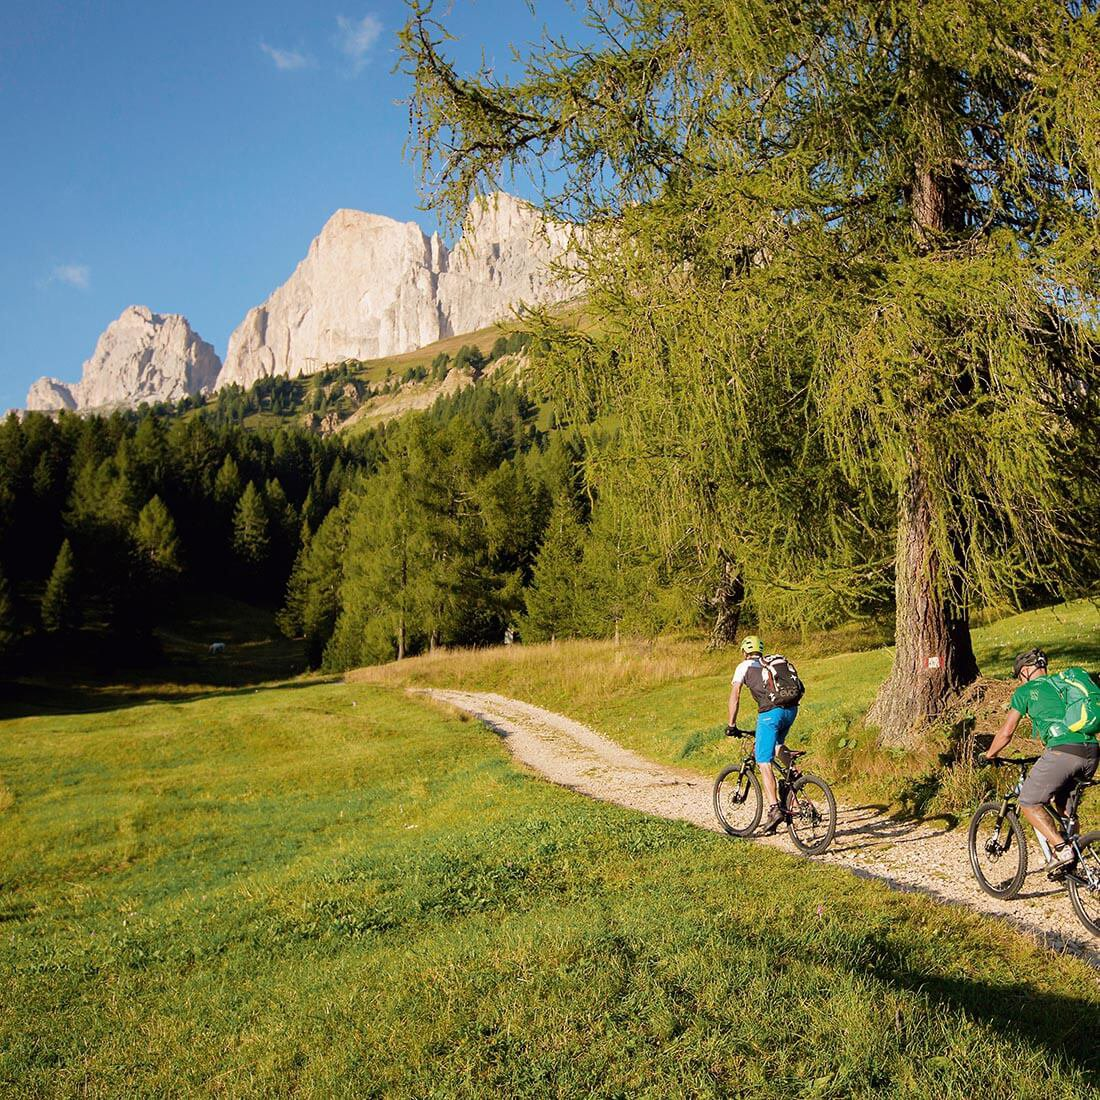 Prackfolerhof or Schlosshof - magnificent mountain scenery of the Dolomites